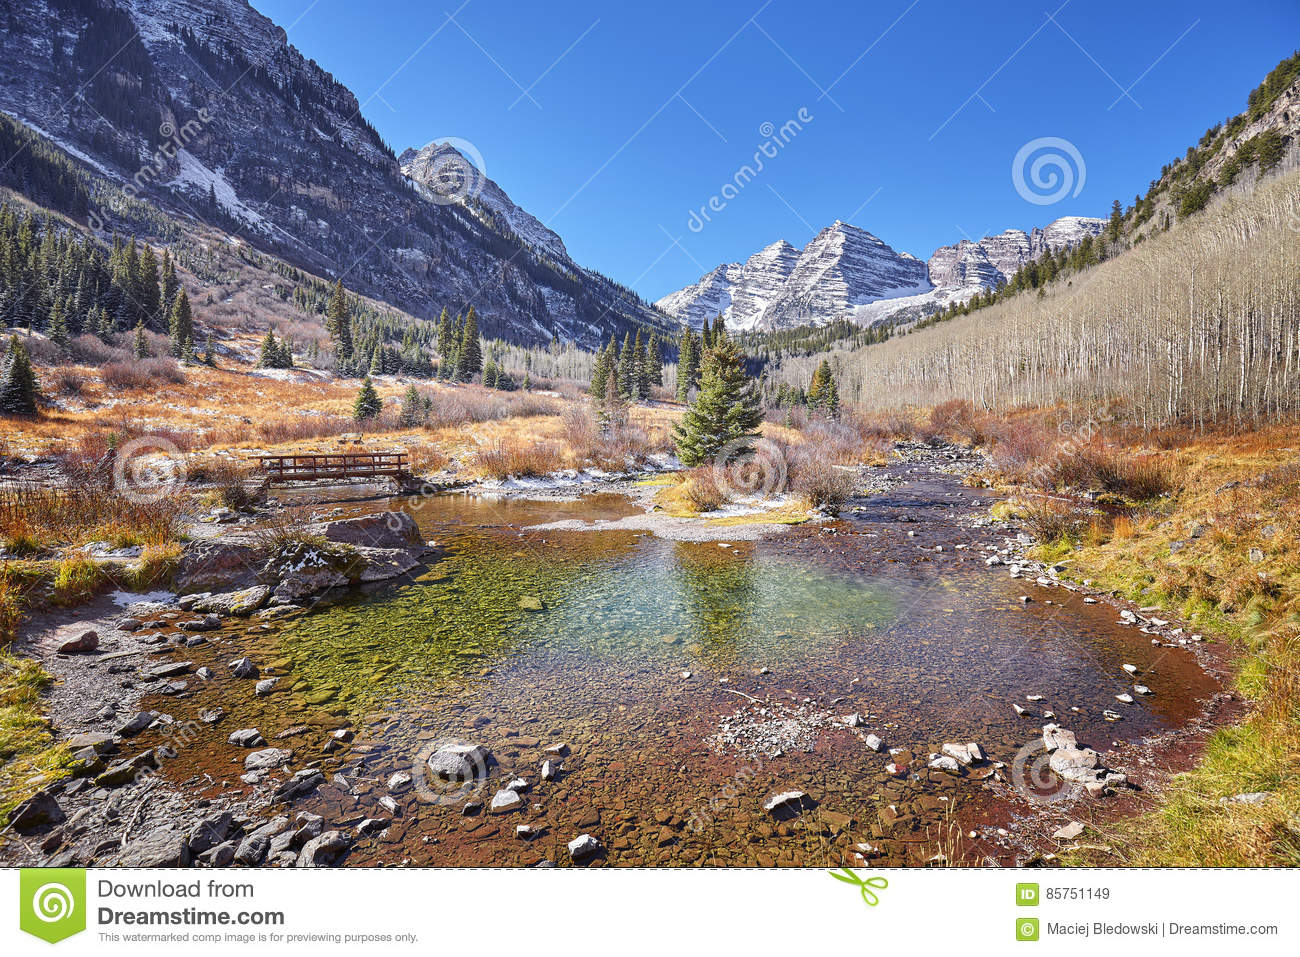 Maroon Bells mountain autumn landscape, Colorado, USA.